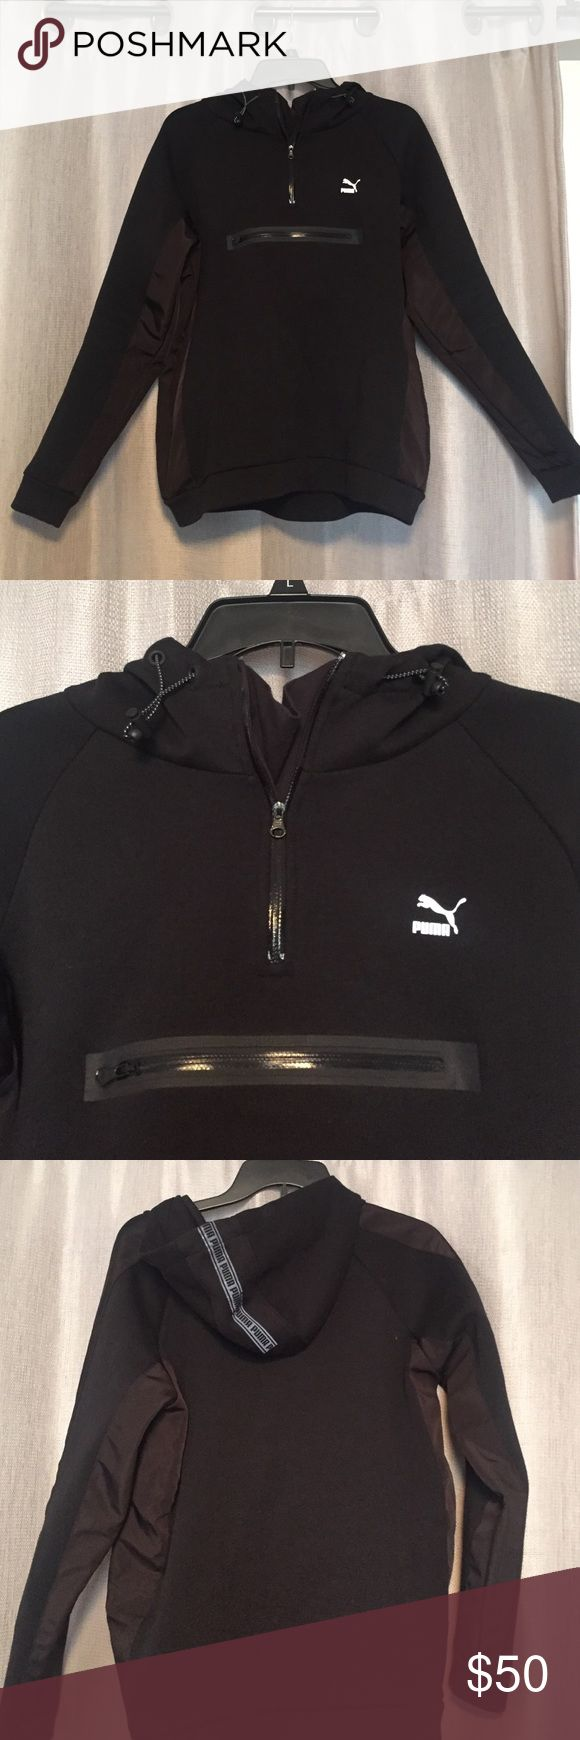 Neoprene Puma Sweatshirt Like new puma sweatshirt. Great condition! Puma logo on front and back of hood are reflective. Puma Tops Sweatshirts & Hoodies